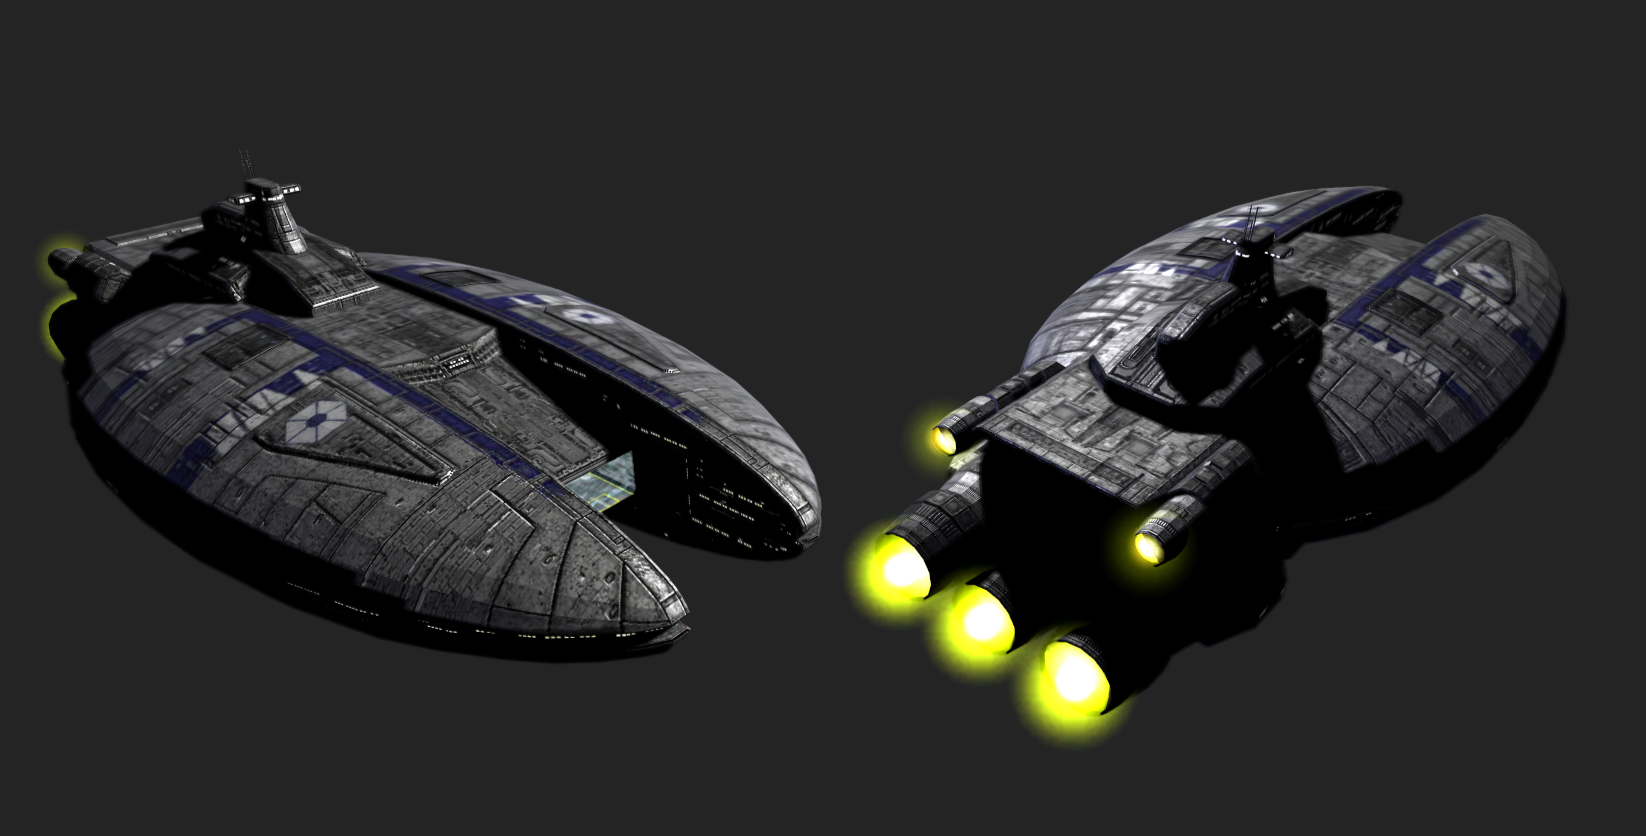 Megaton-class Sepertist Carrier image - Knights of the Old